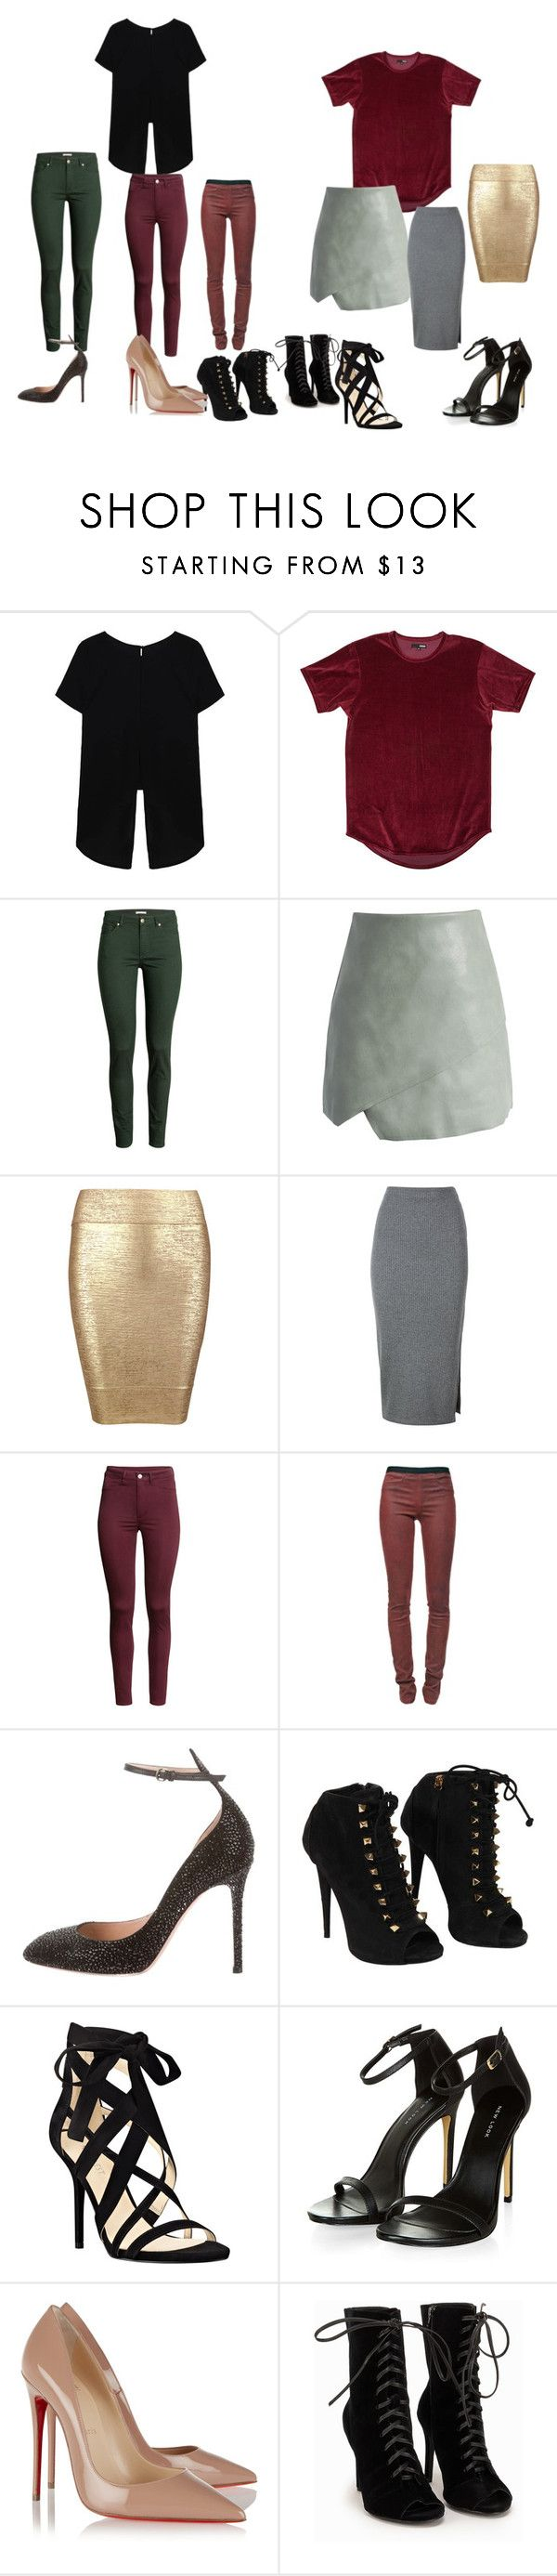 """""""Untitled #99"""" by rosesanders on Polyvore featuring H&M, Chicwish, Posh Girl, Whistles, Helmut Lang, Valentino, Giuseppe Zanotti, Nine West and Christian Louboutin"""